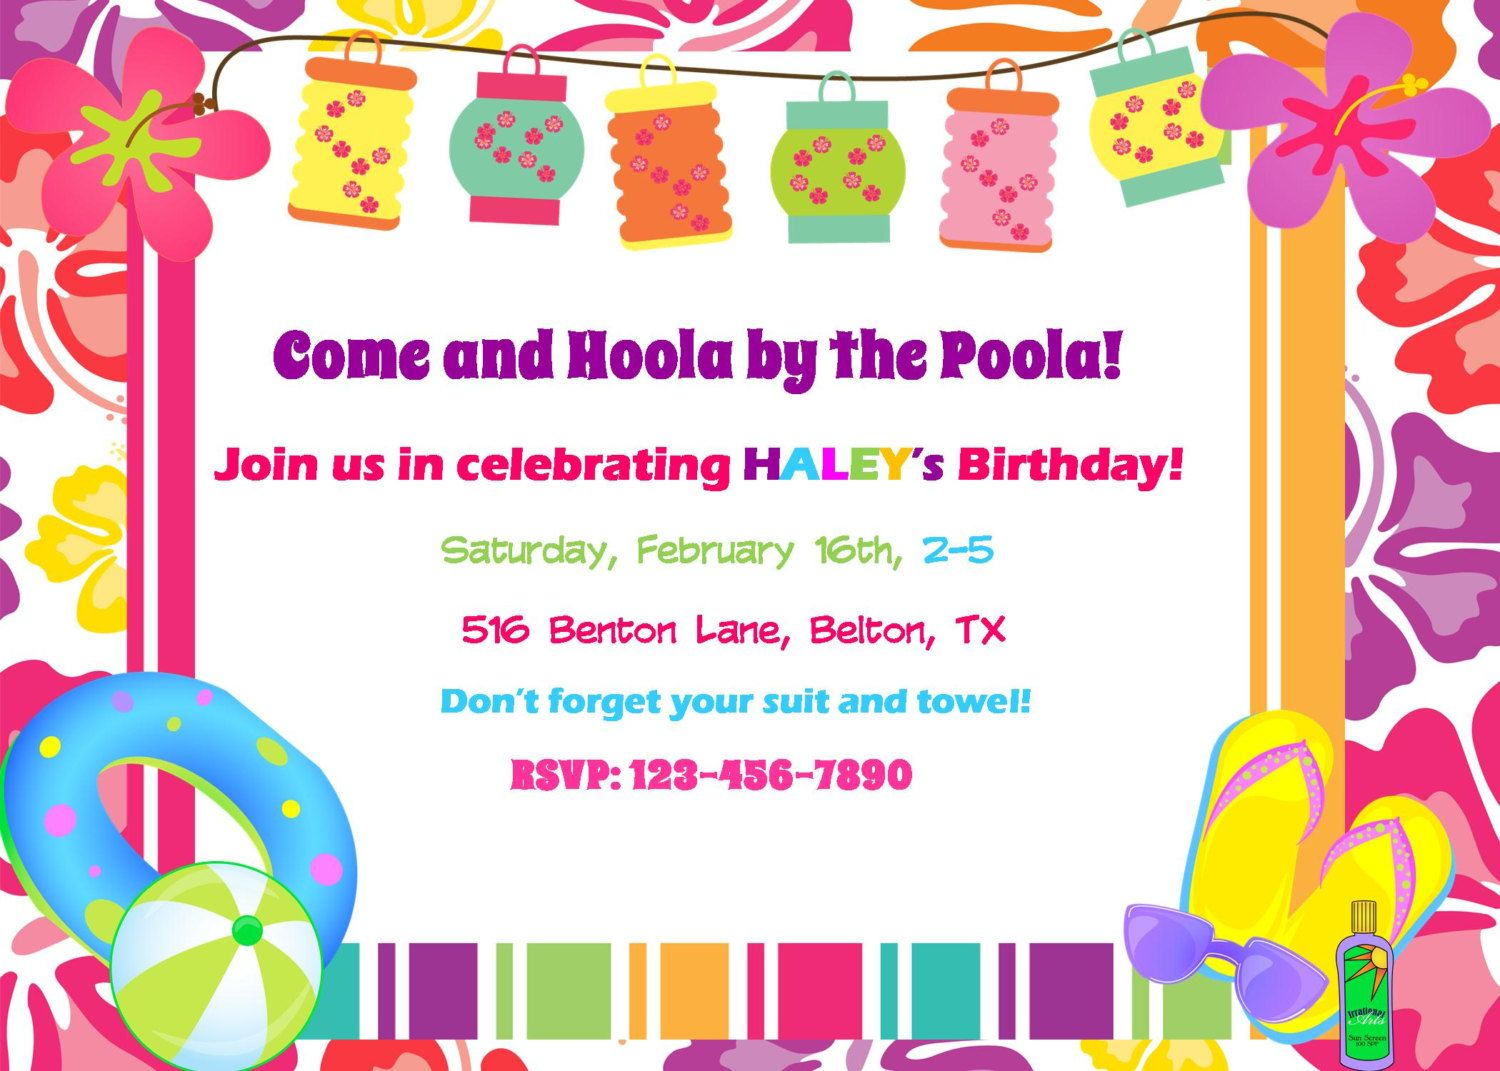 luau party invitations templates free - Ideal.vistalist.co